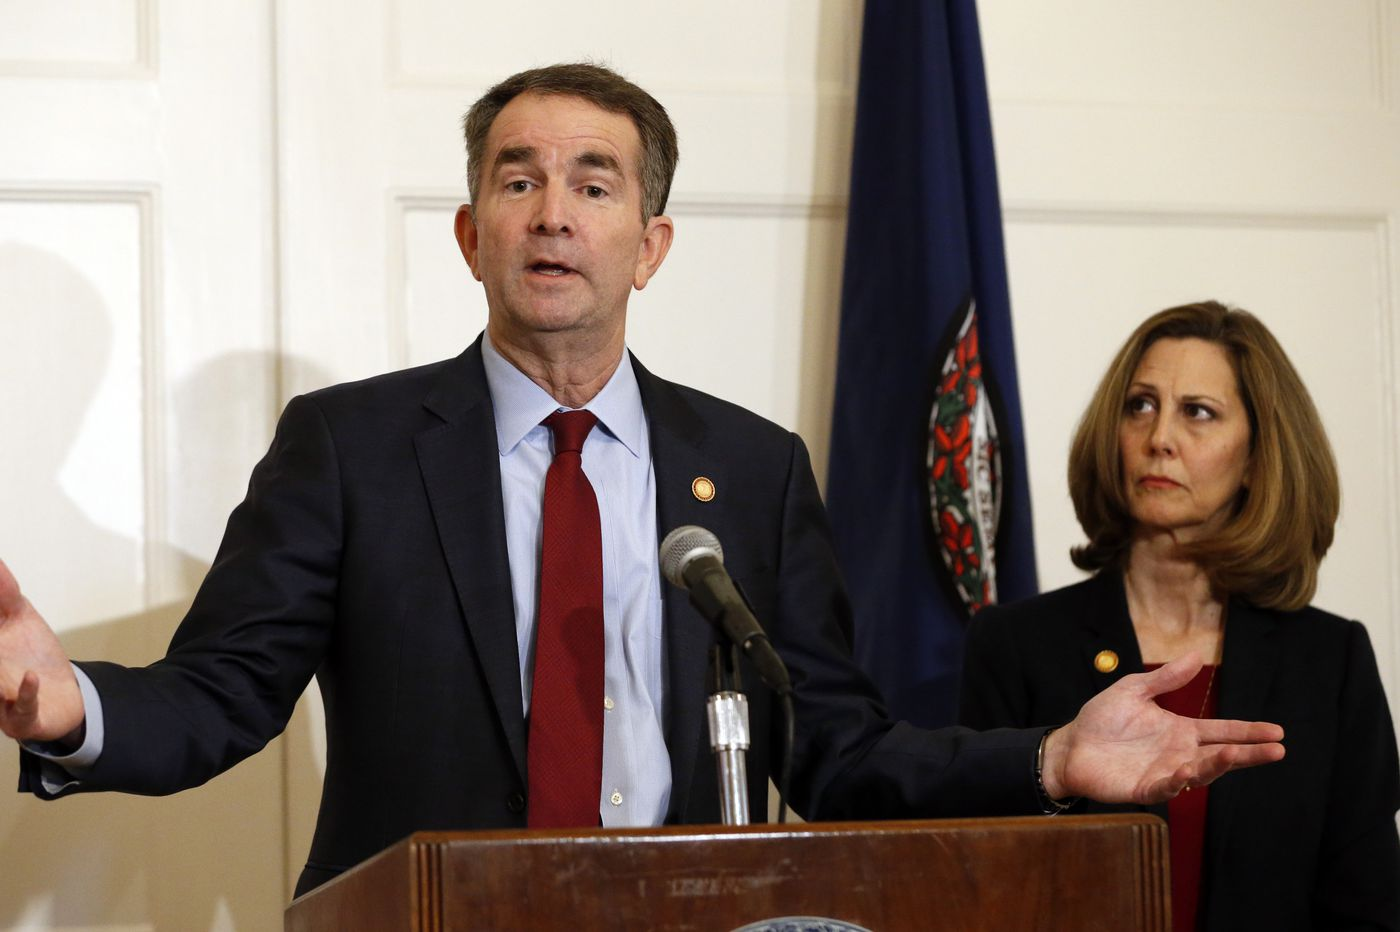 'This isn't me': Gov. Northam's defiance caught advisers off guard